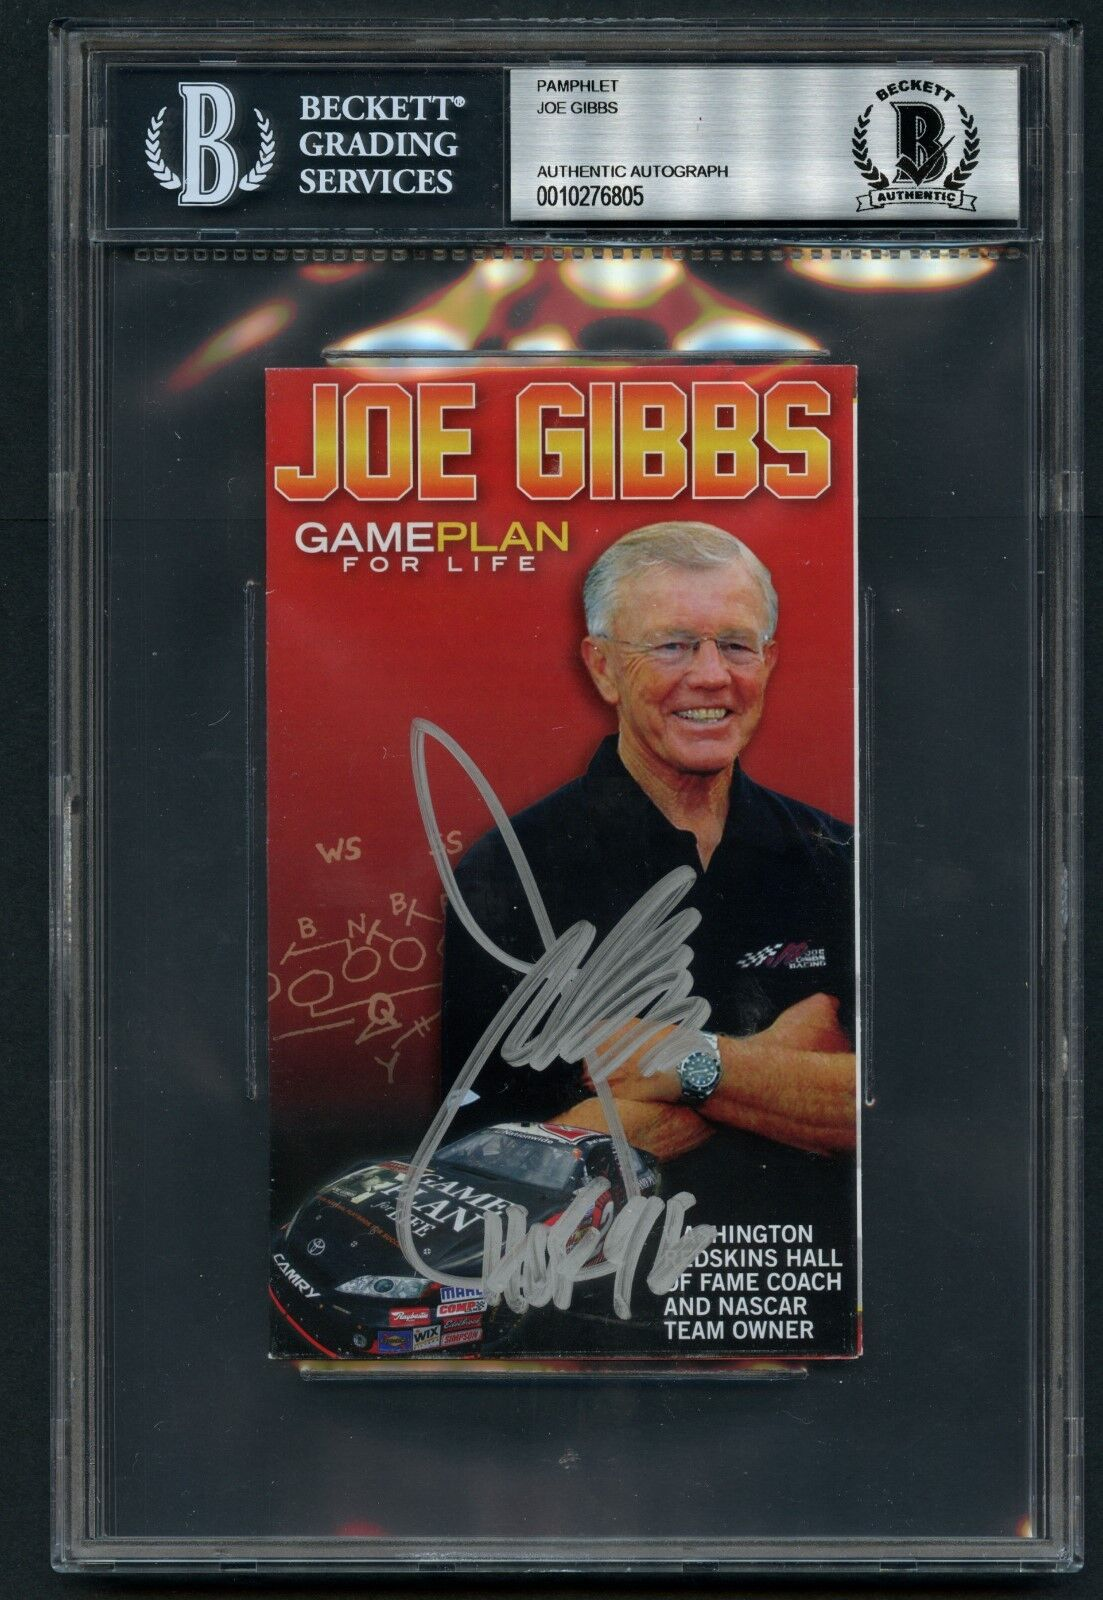 Joe Gibbs Autographe Signé Auto 3.5x5.5 Brochure Match Plan For Life Bas Slabbed